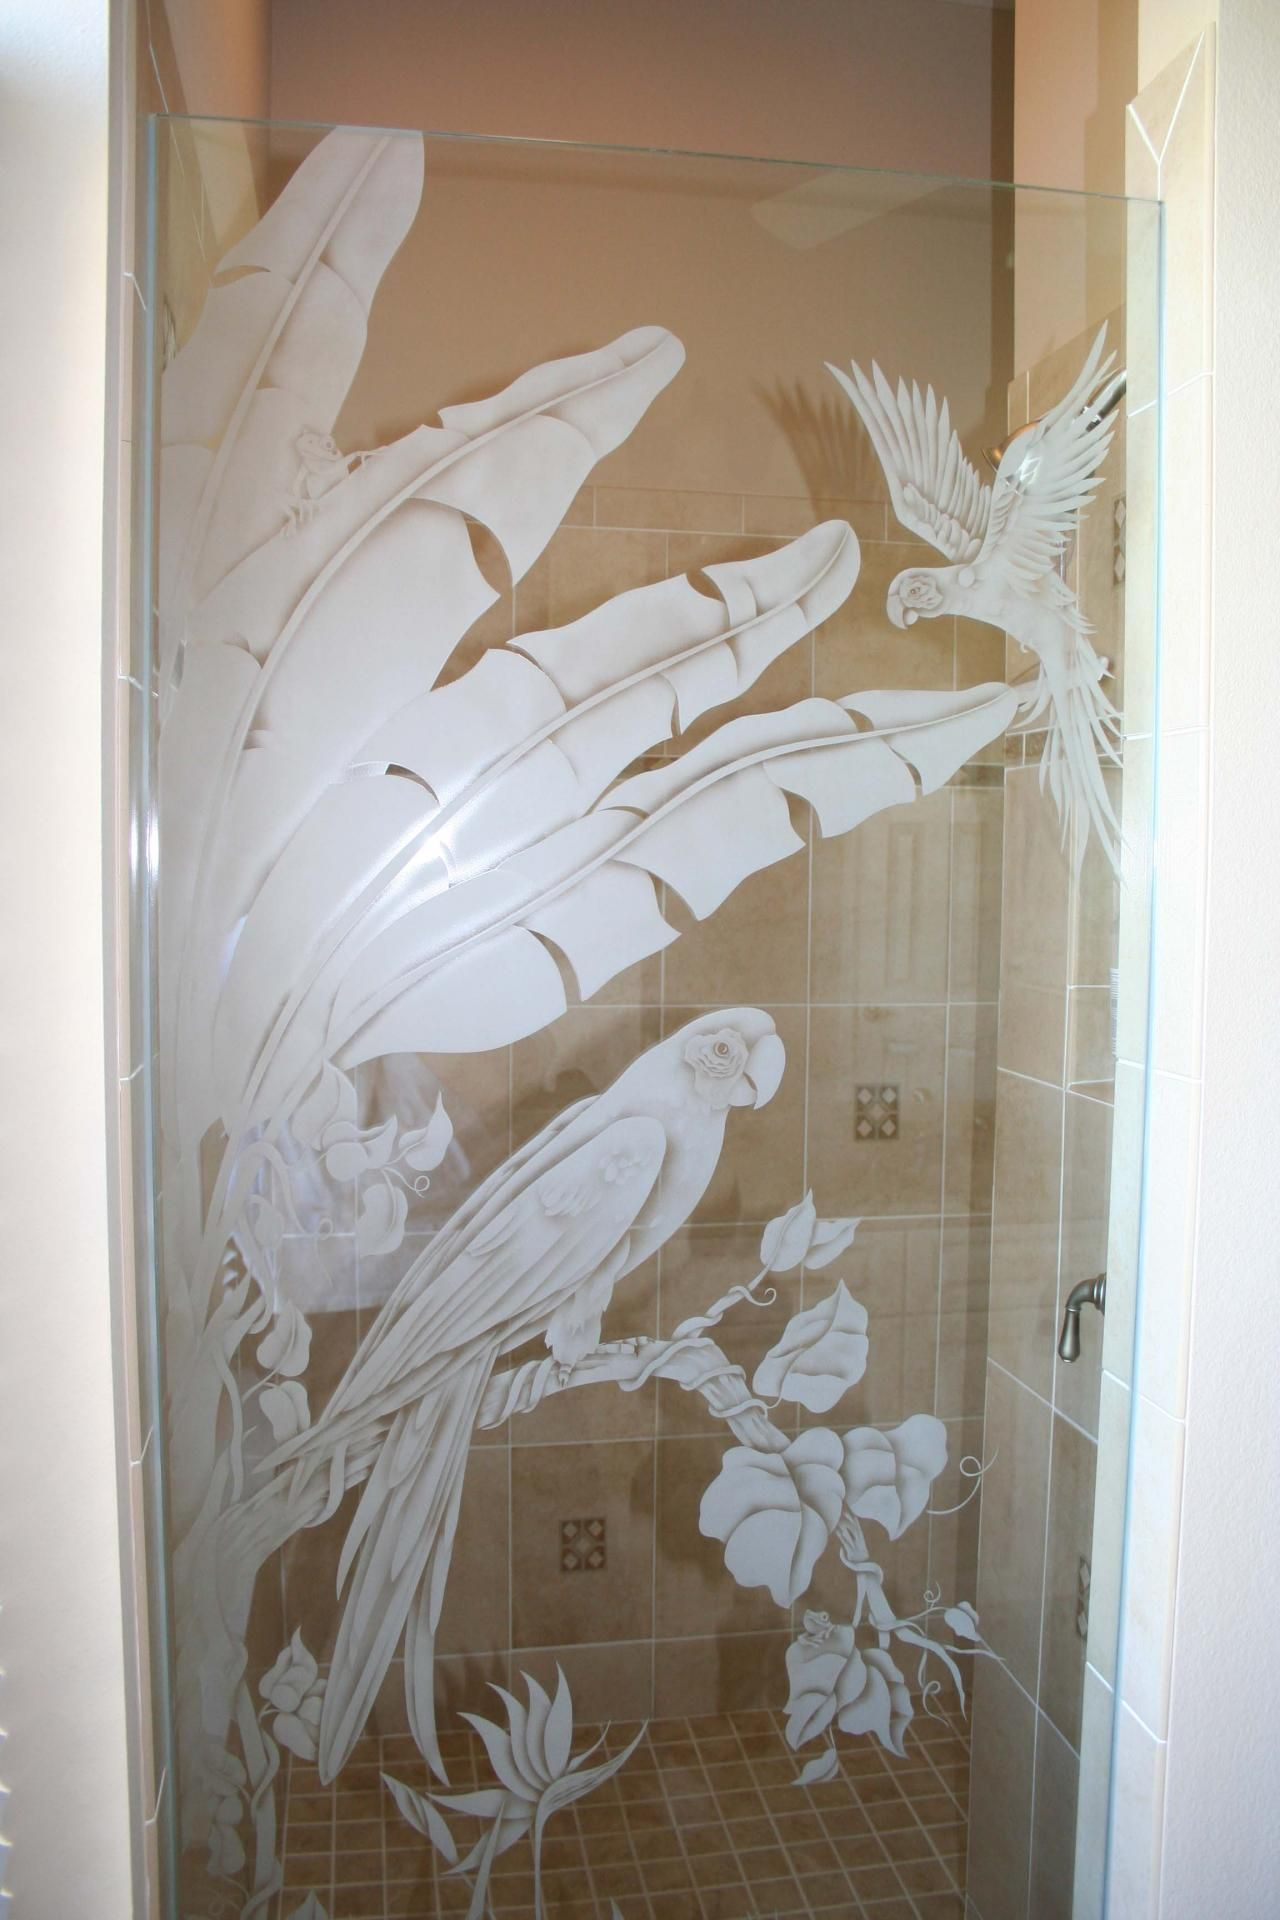 Artfully Yours Glass Studio Etched Glass Glass Etching Glass Engraving Sandblasted Glass